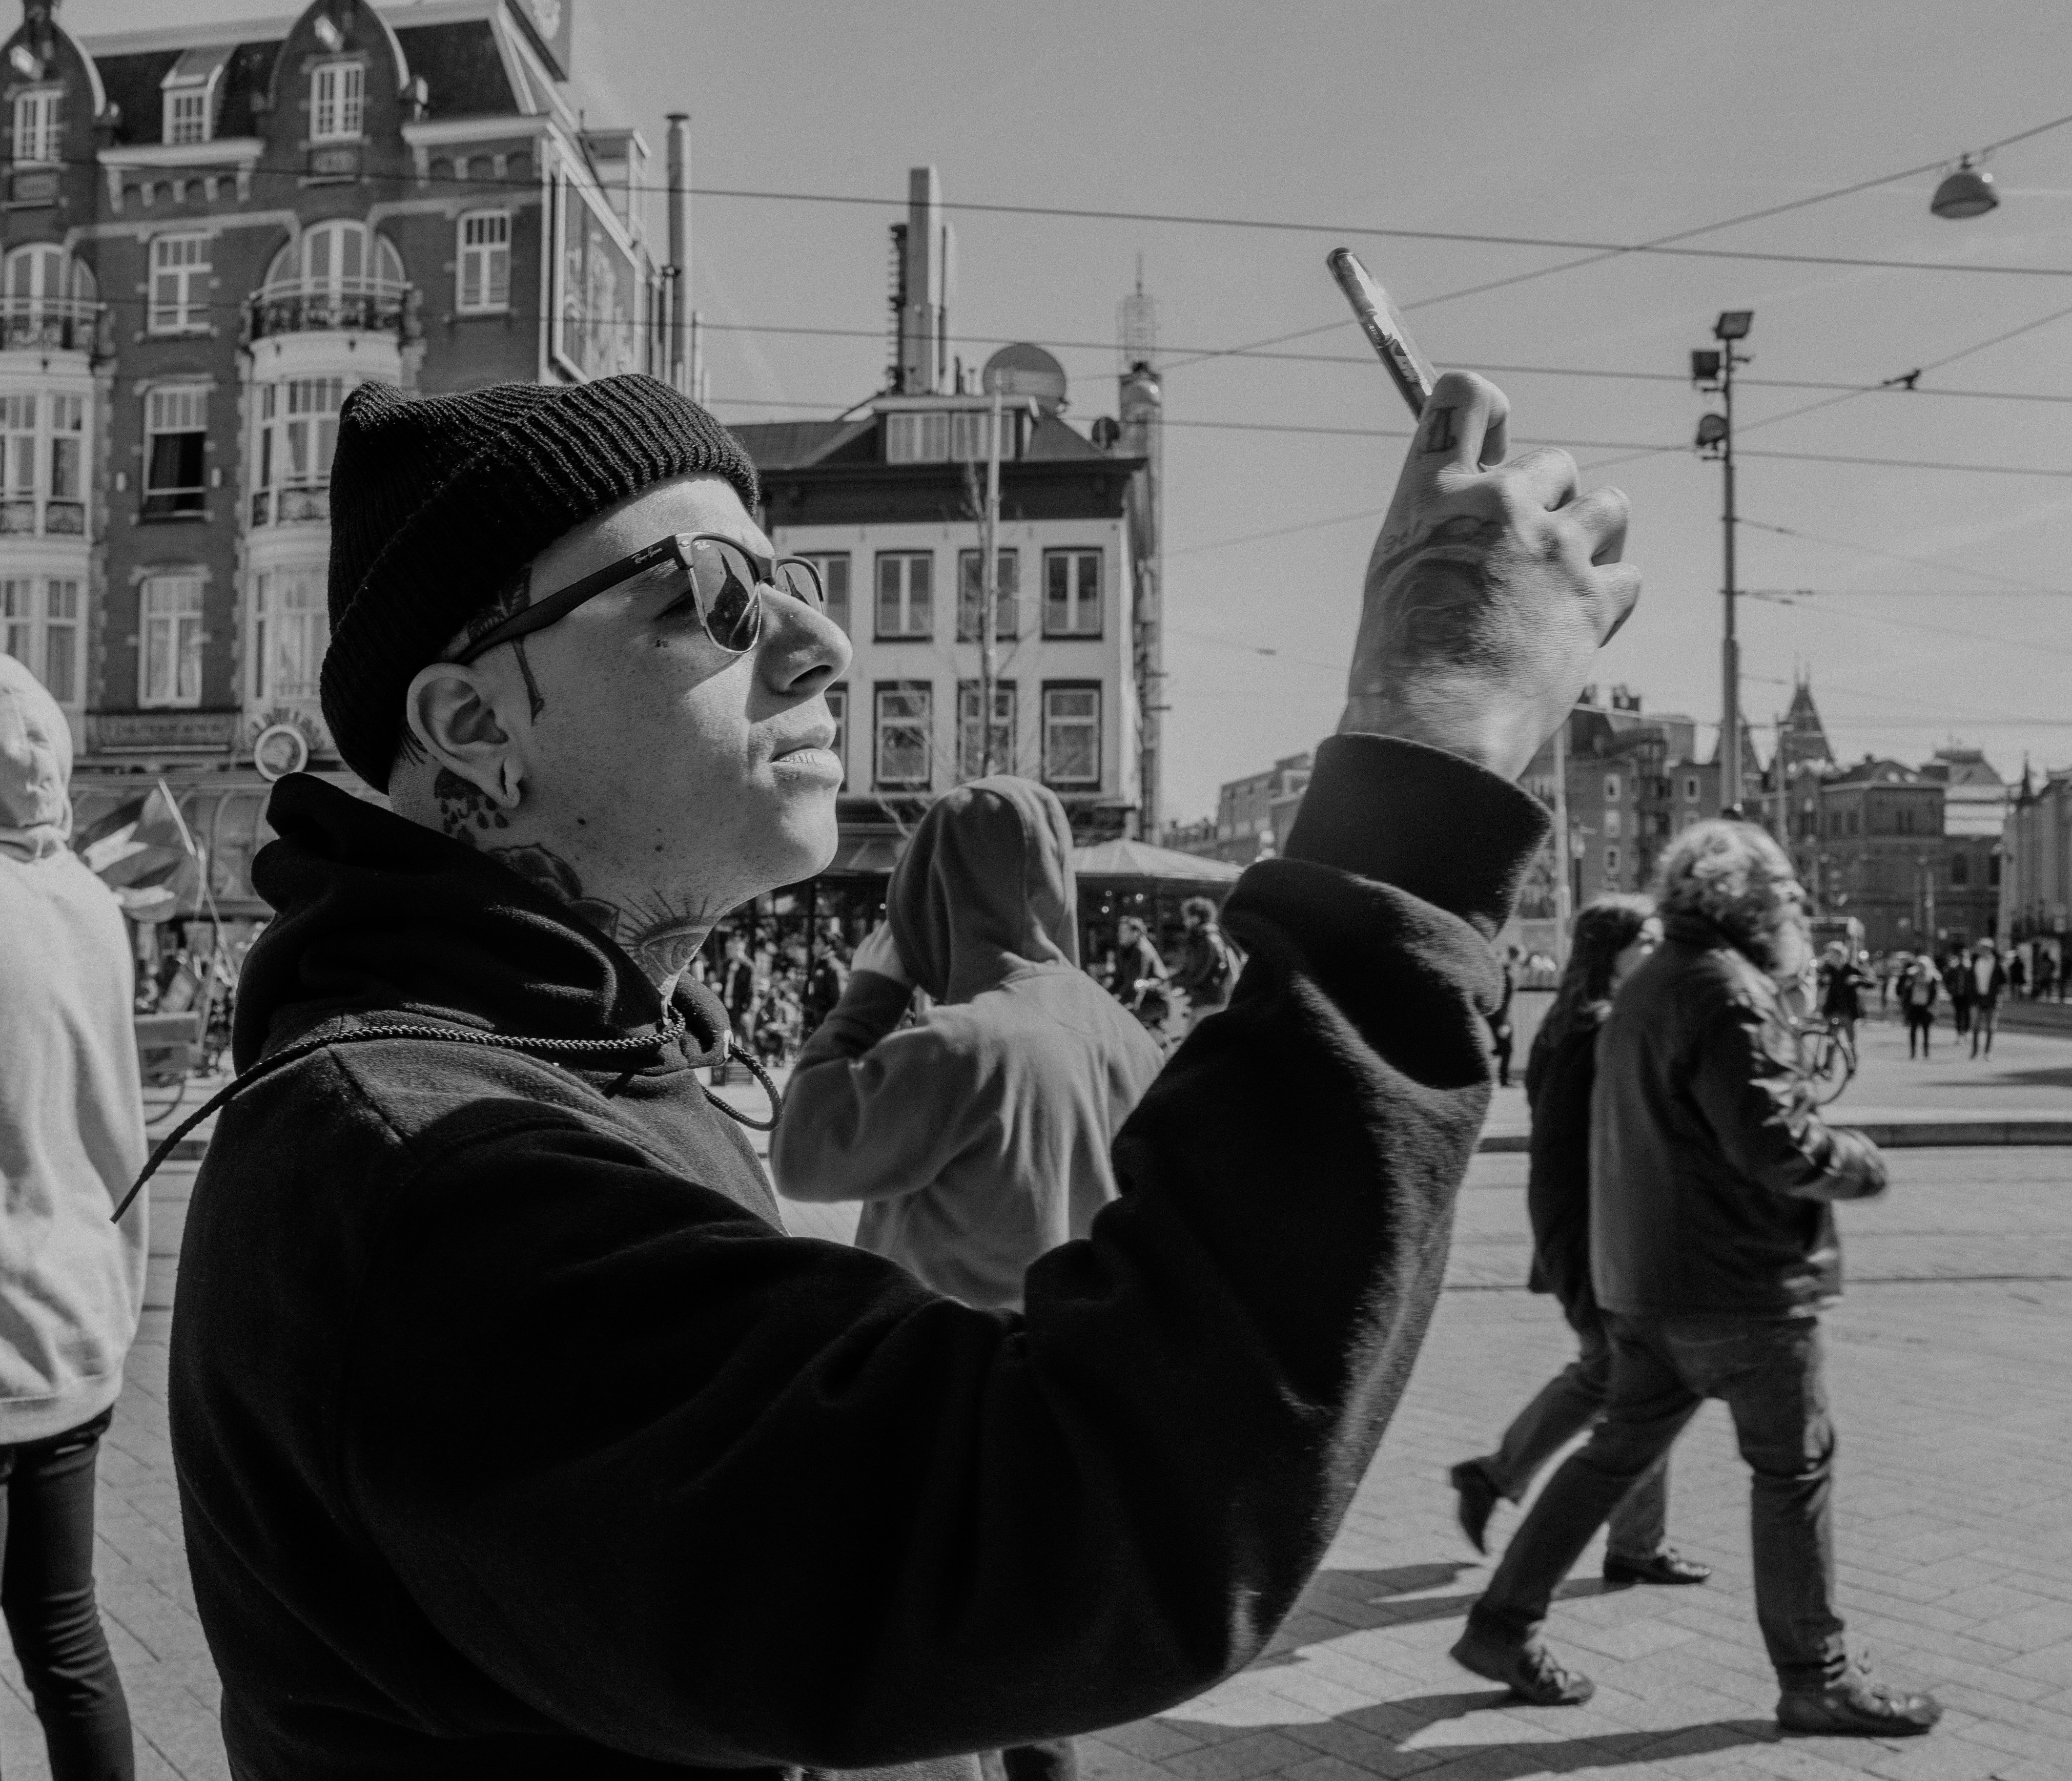 14:58. Panesso takes in the Leidseplein.